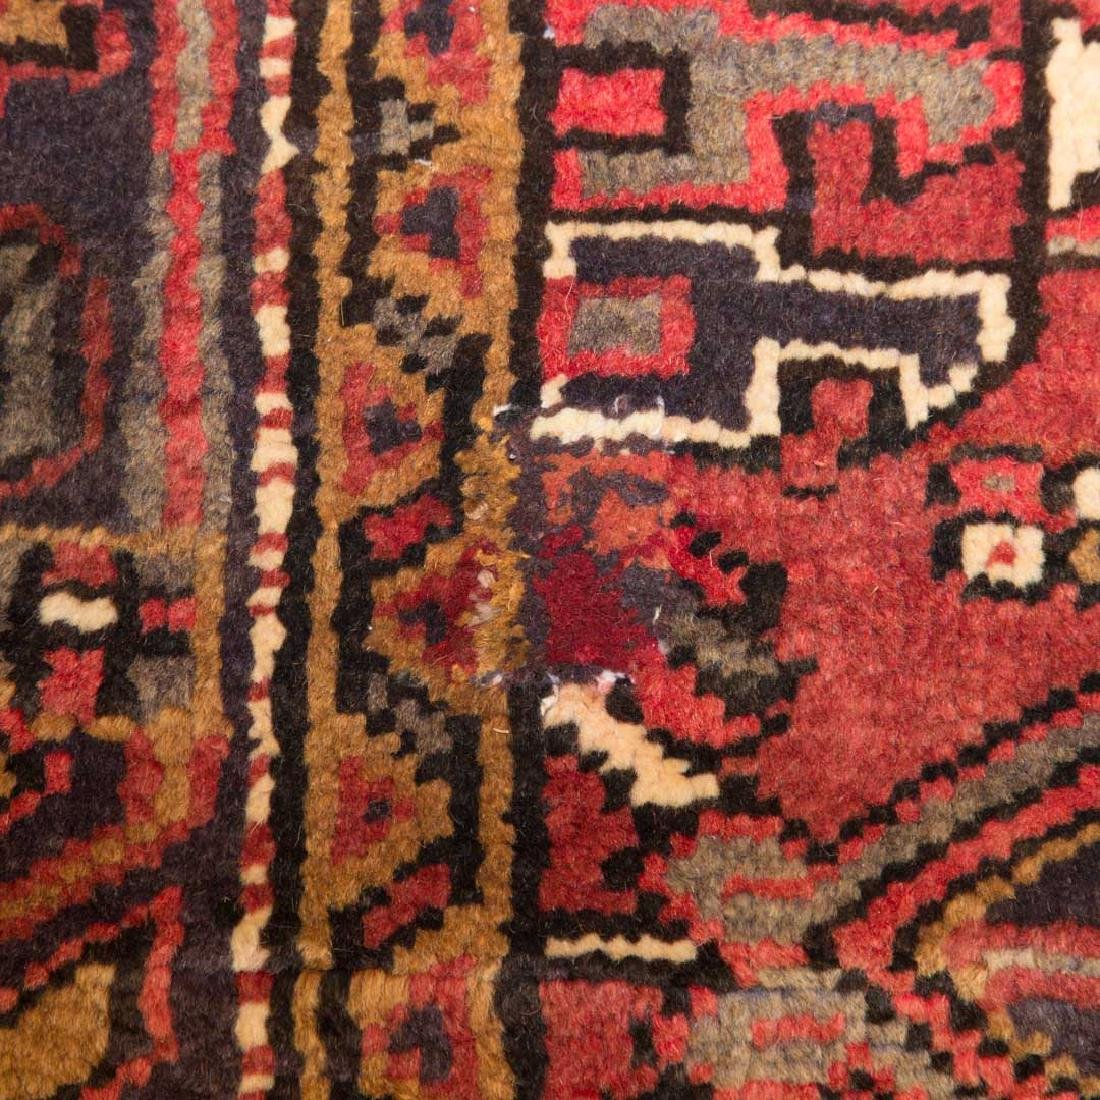 Persian Herez rug, approx. 7.4 x 9.9 - 4